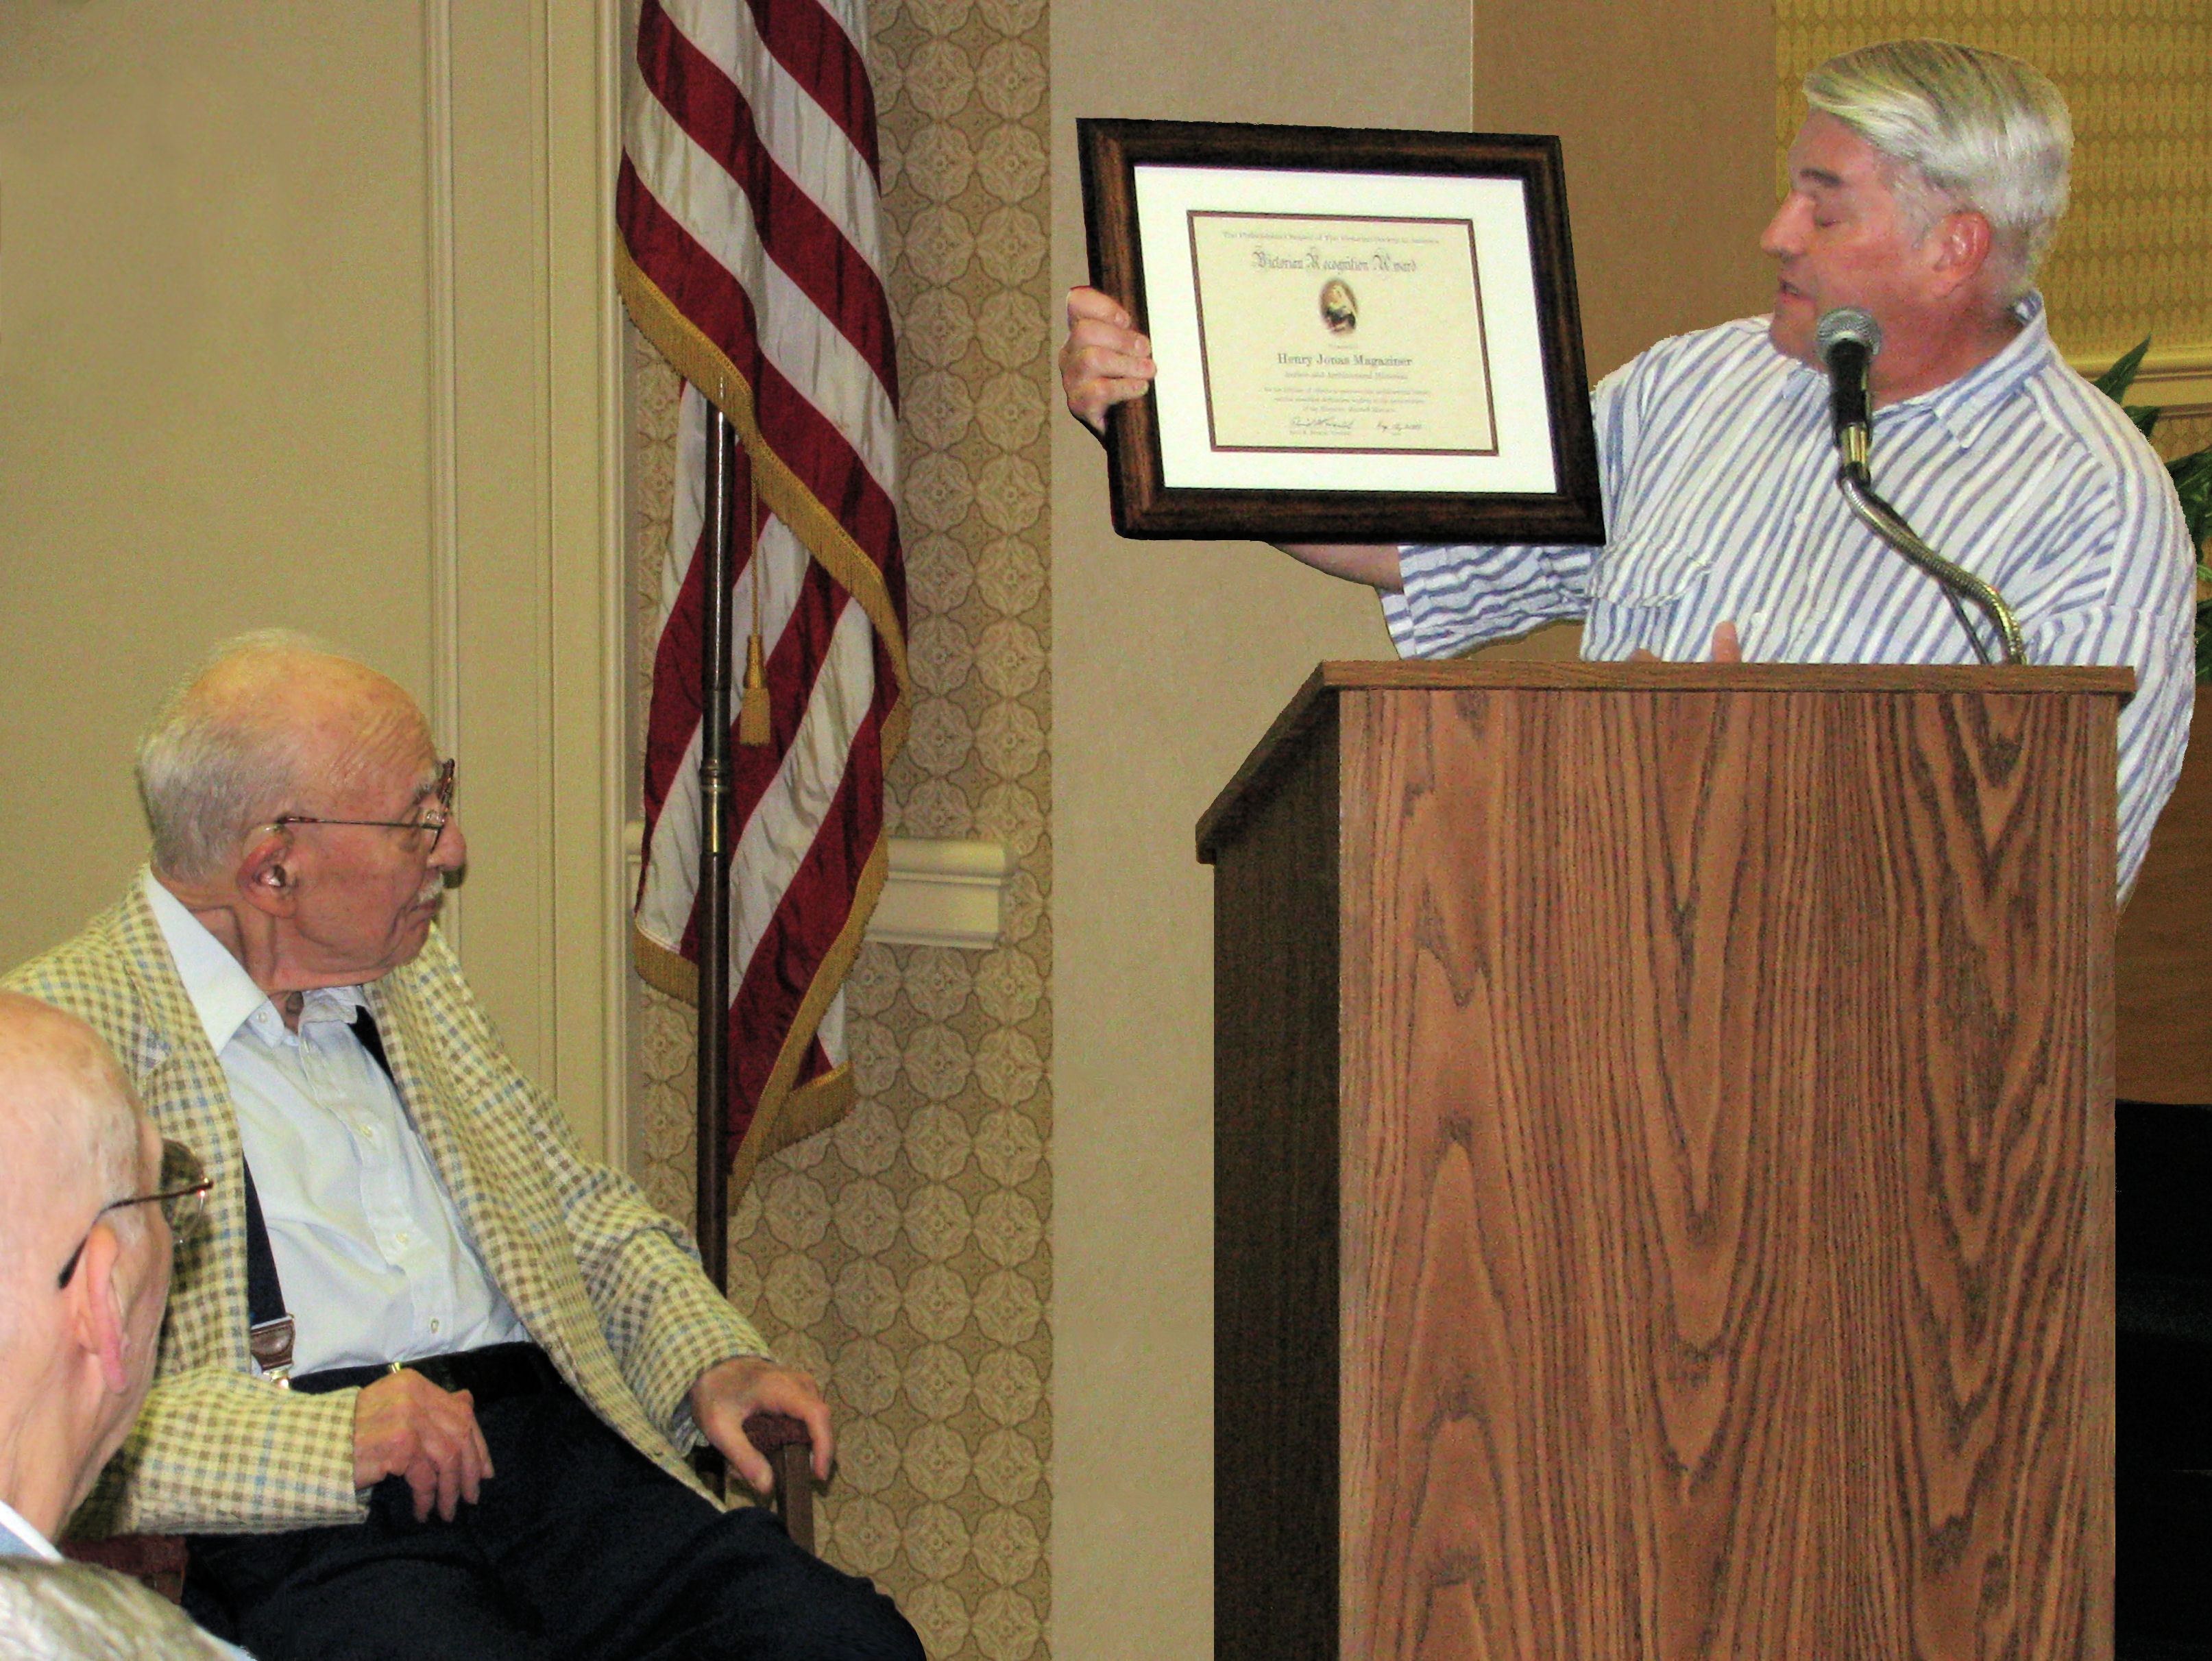 In 2009, the Victorian Society of America (Philadelphia Chapter) presented Henry J. Magaziner with its Recognition Award.